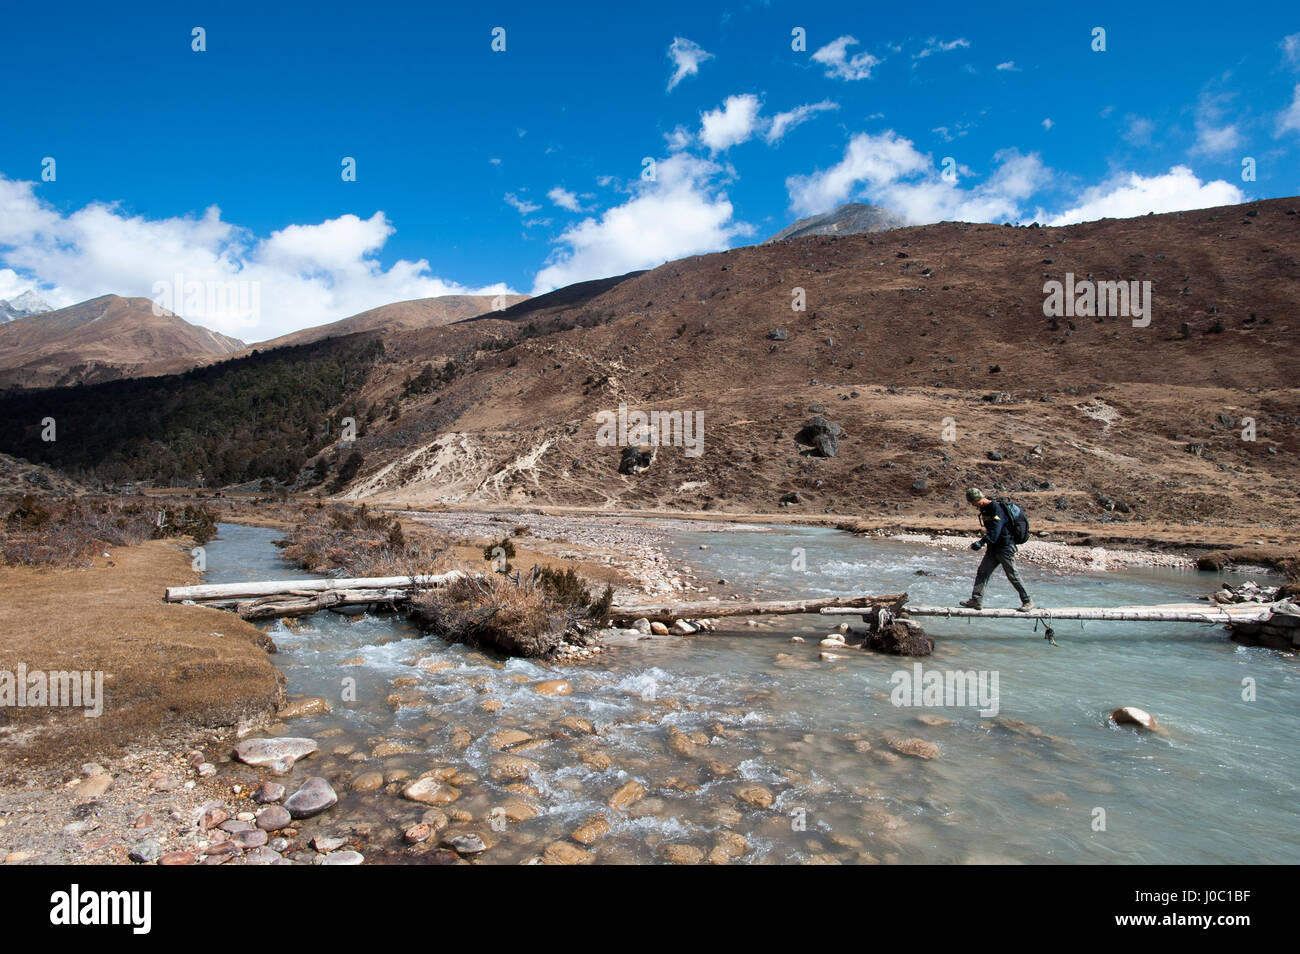 Trekking across a bridge between Shomuthang and Robluthang on the Laya-Gasa trekking route, Gasa District, Bhutan, - Stock Image